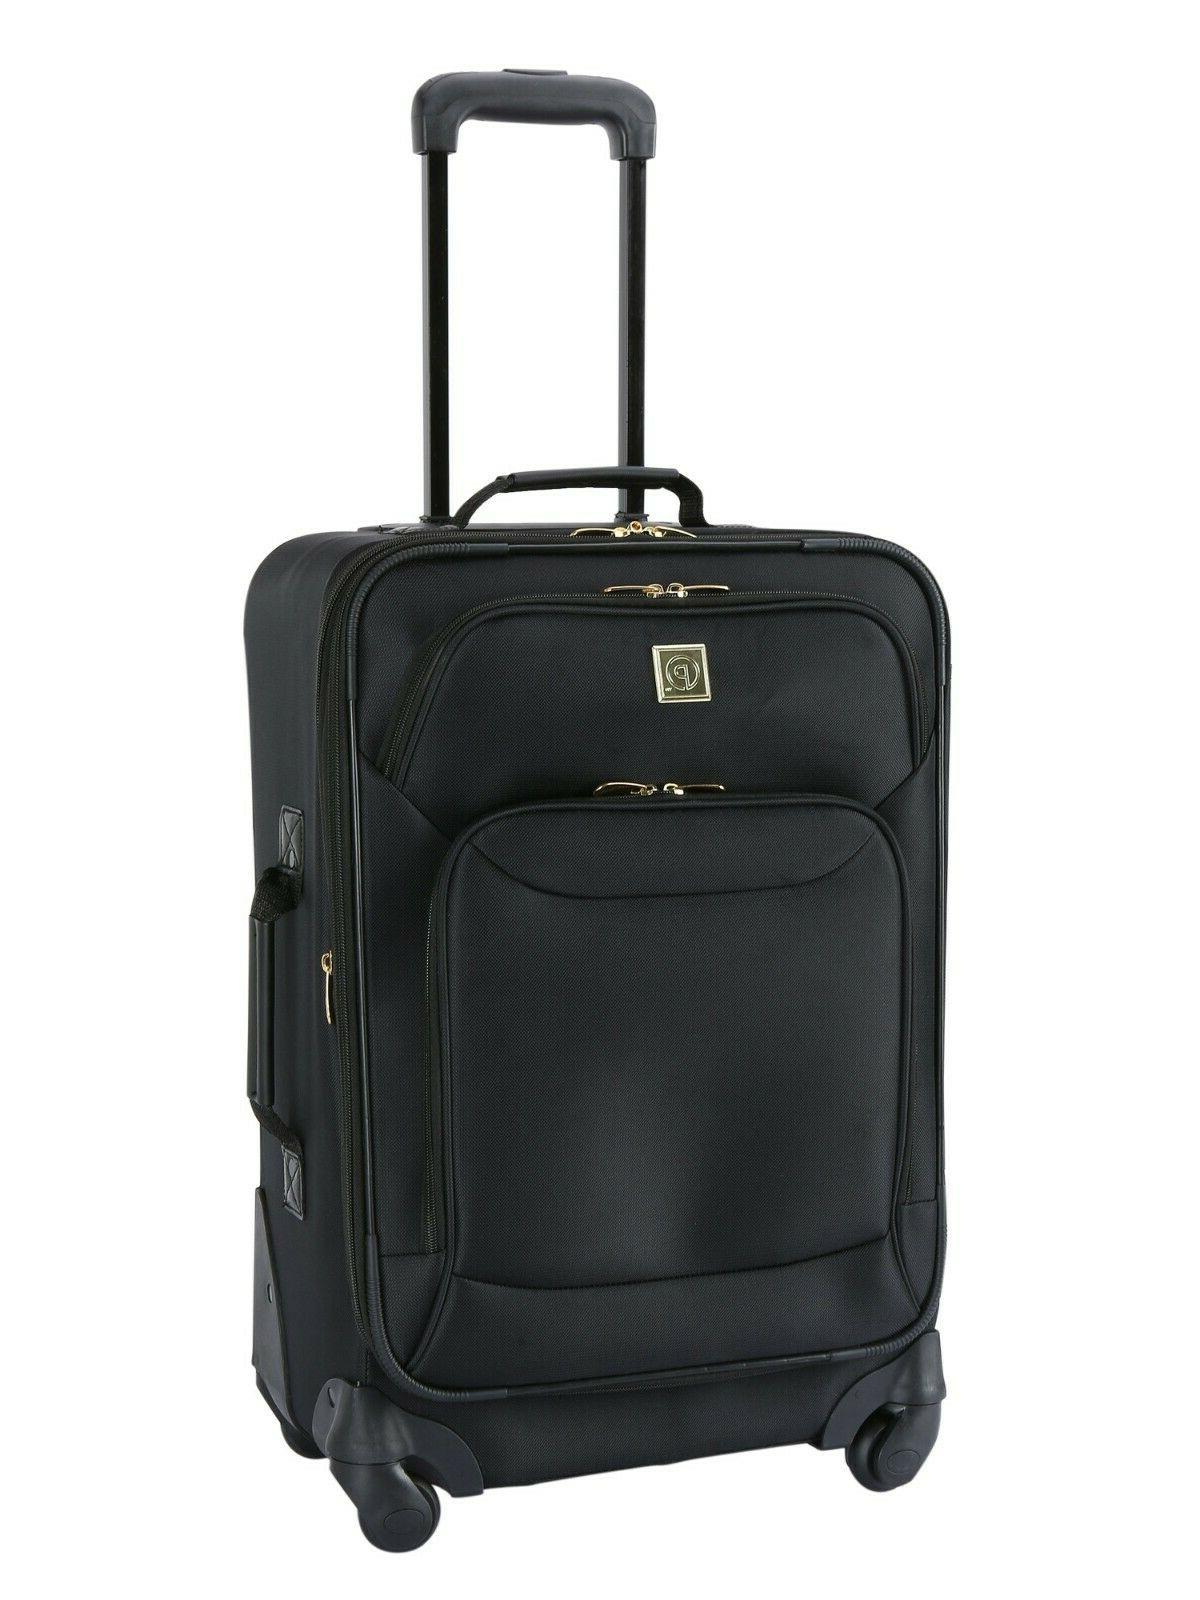 Luggage Set Protege 2 Piece Top Quality- 21 25 inch